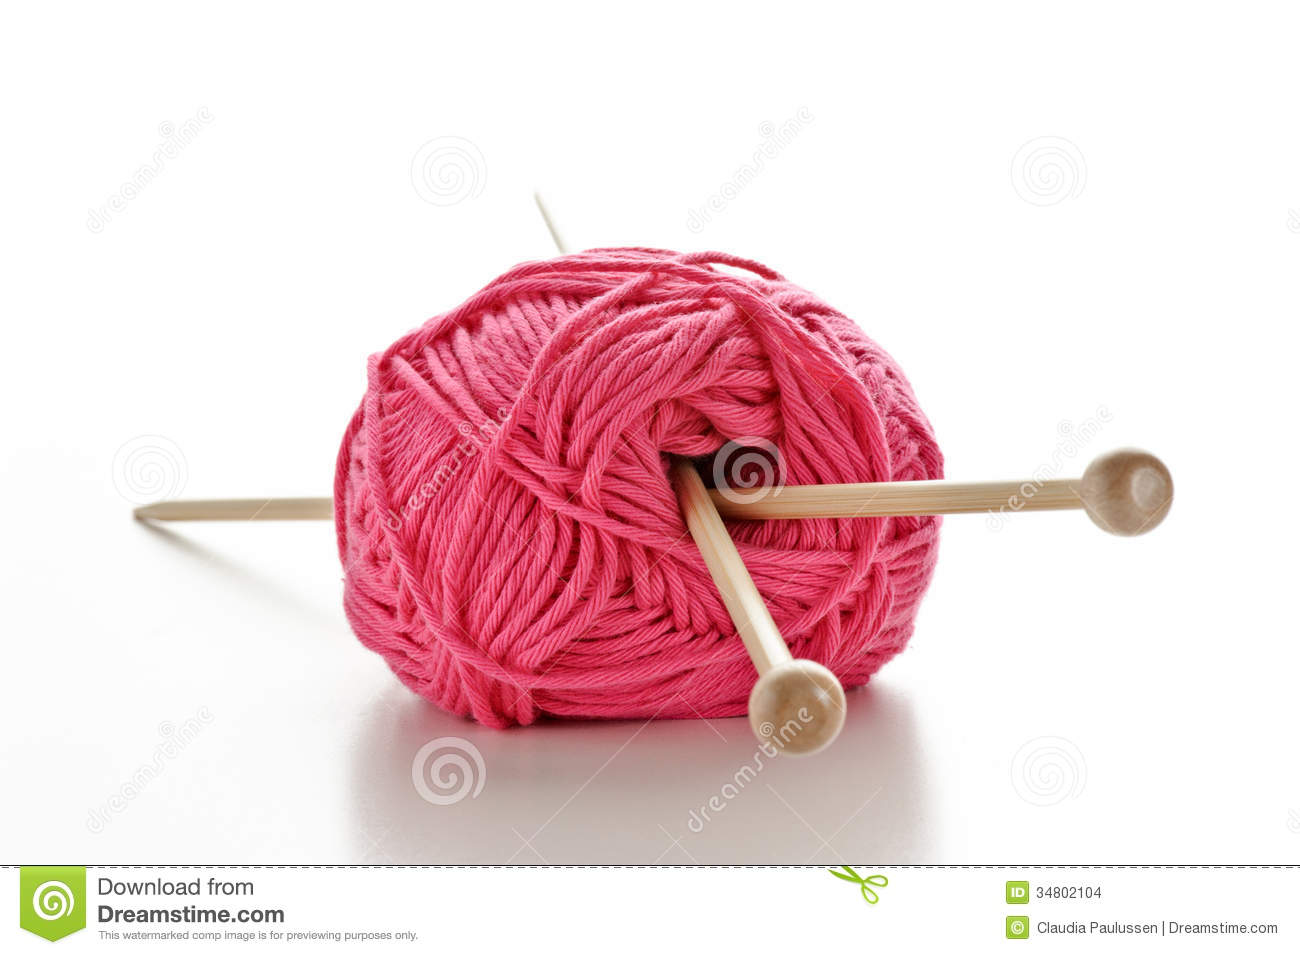 Knitting Patterns Wool And Needles : Knitting Needles In A Ball Of Wool Stock Images - Image ...